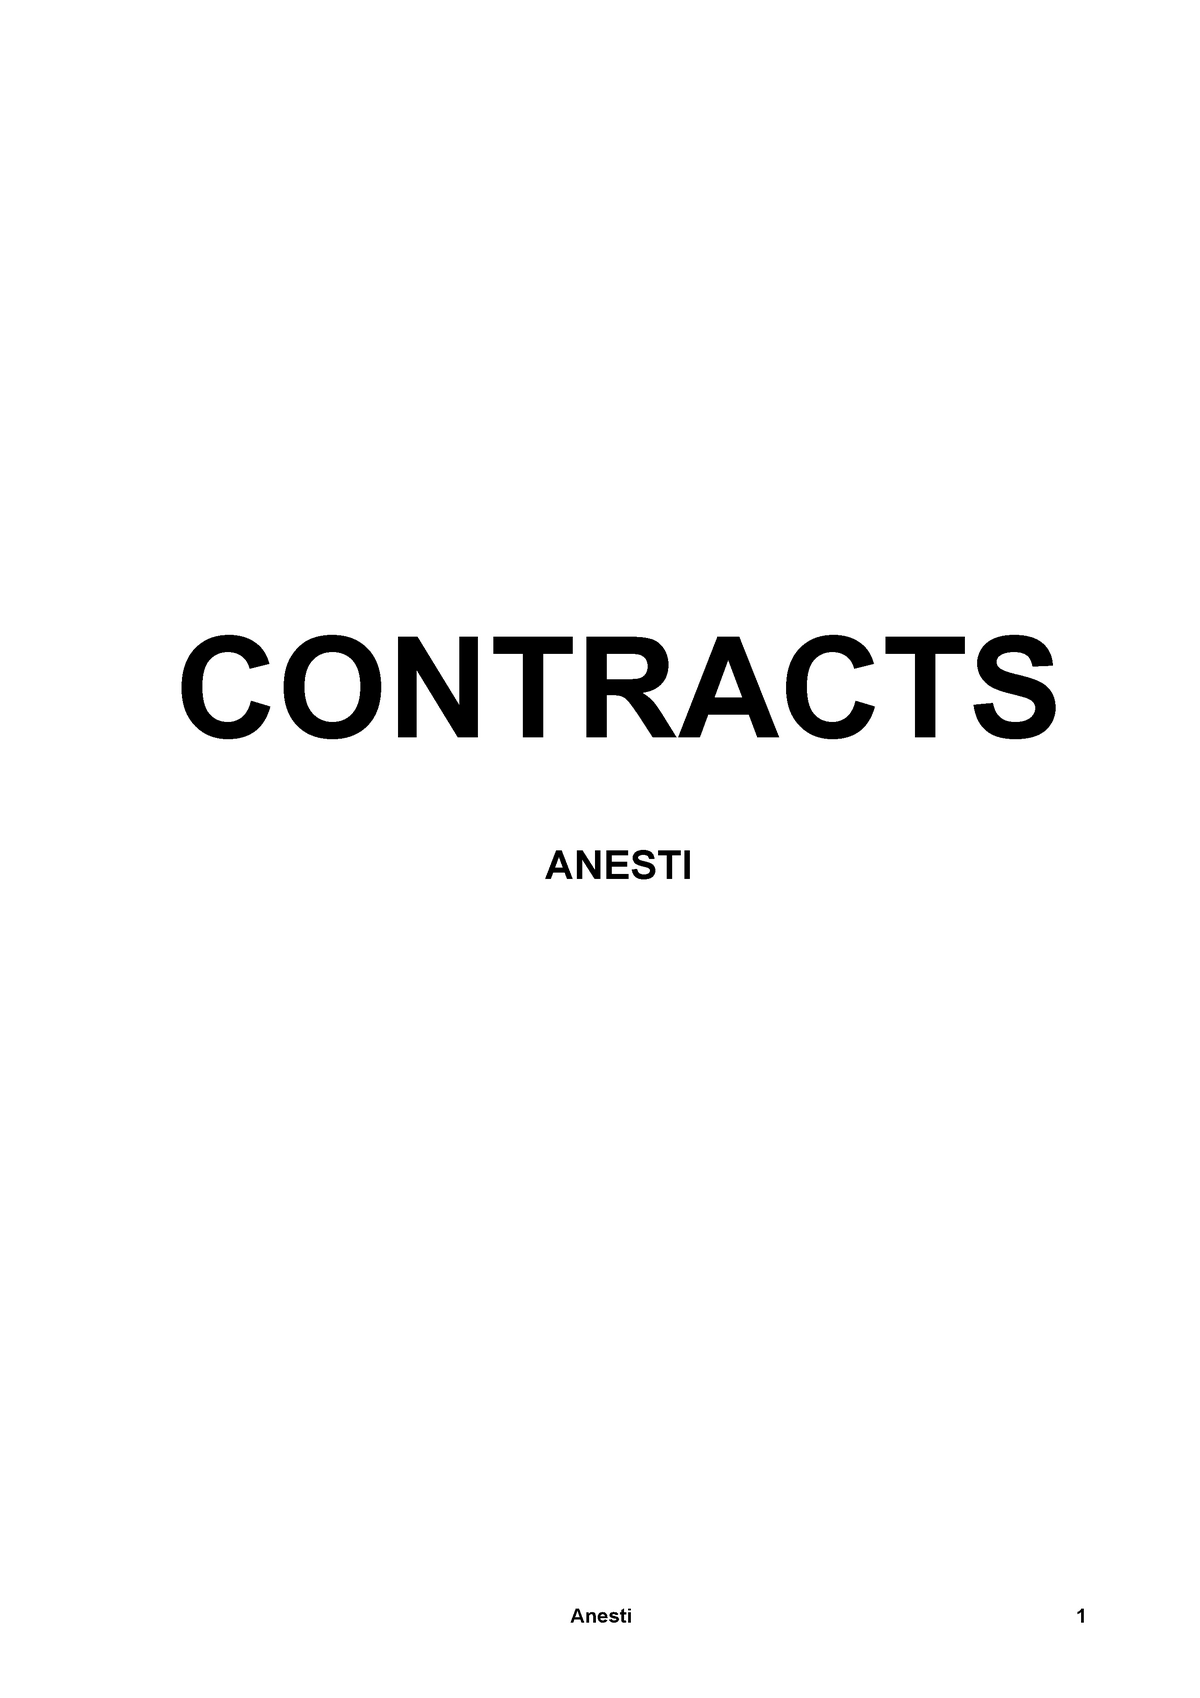 Contracts Notes Anesti - Final - LAWS50029 - StuDocu